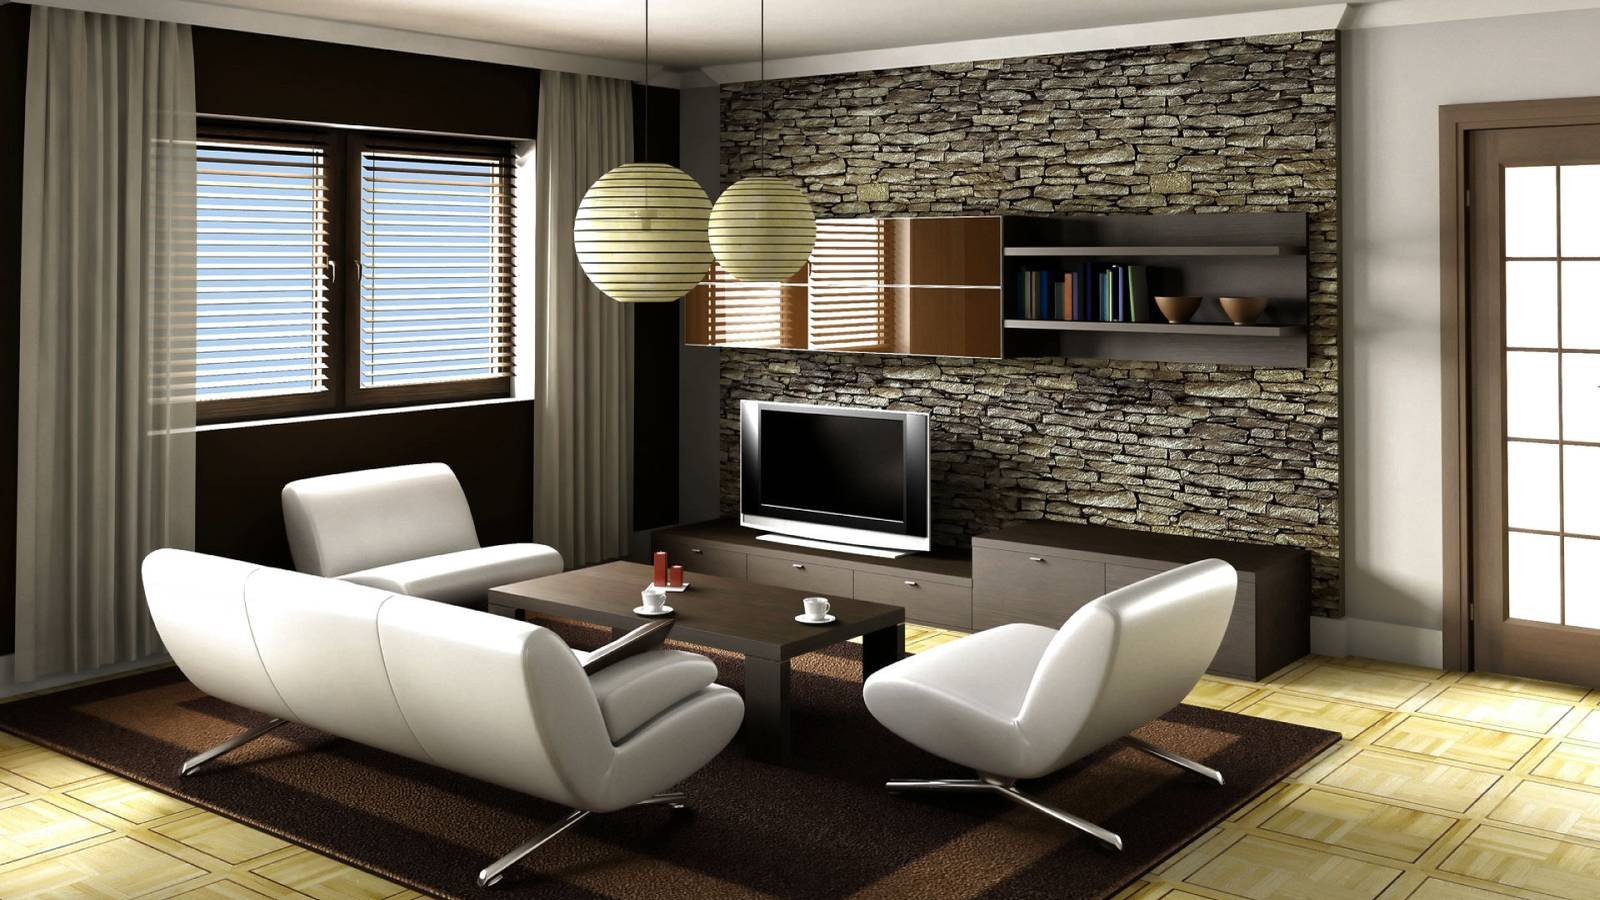 Modern Contemporary Living Room Decorating Ideas New 17 Cool Modern Living Room Ideas for Different Home Types Interior Design Inspirations